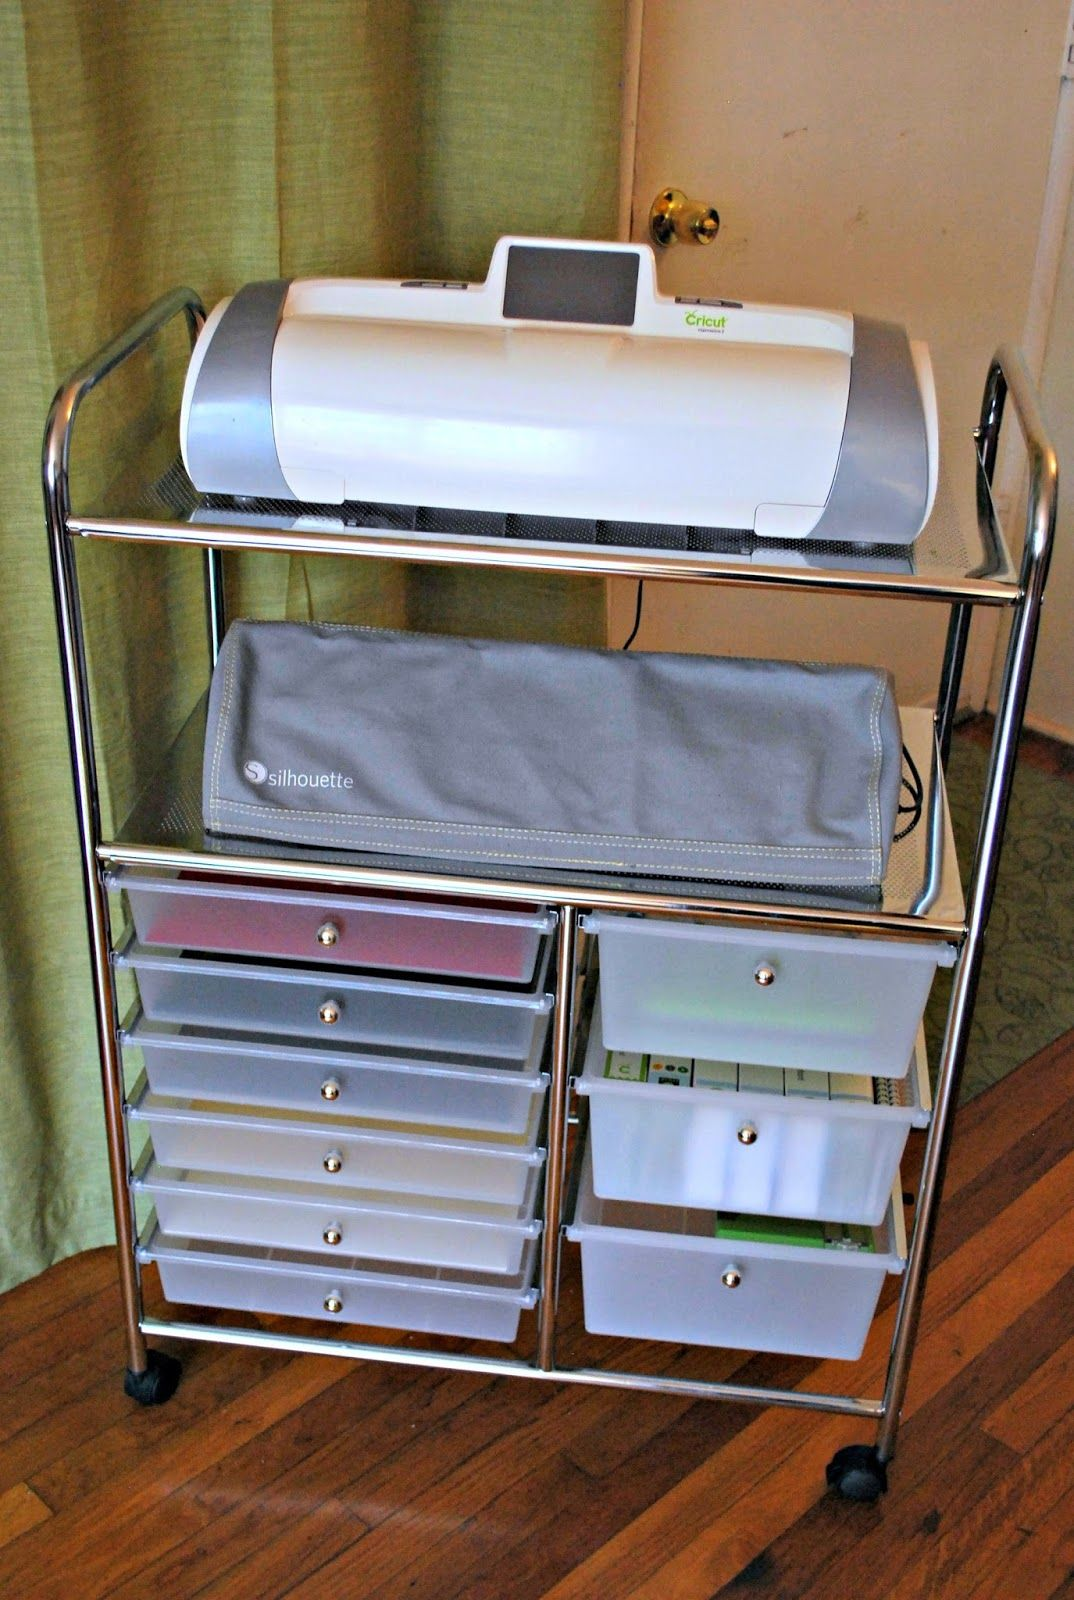 Scrapbook ideas using cricut - Crafty Creations With Shemaine A Fabulous Cricut Silhouette Storage Find